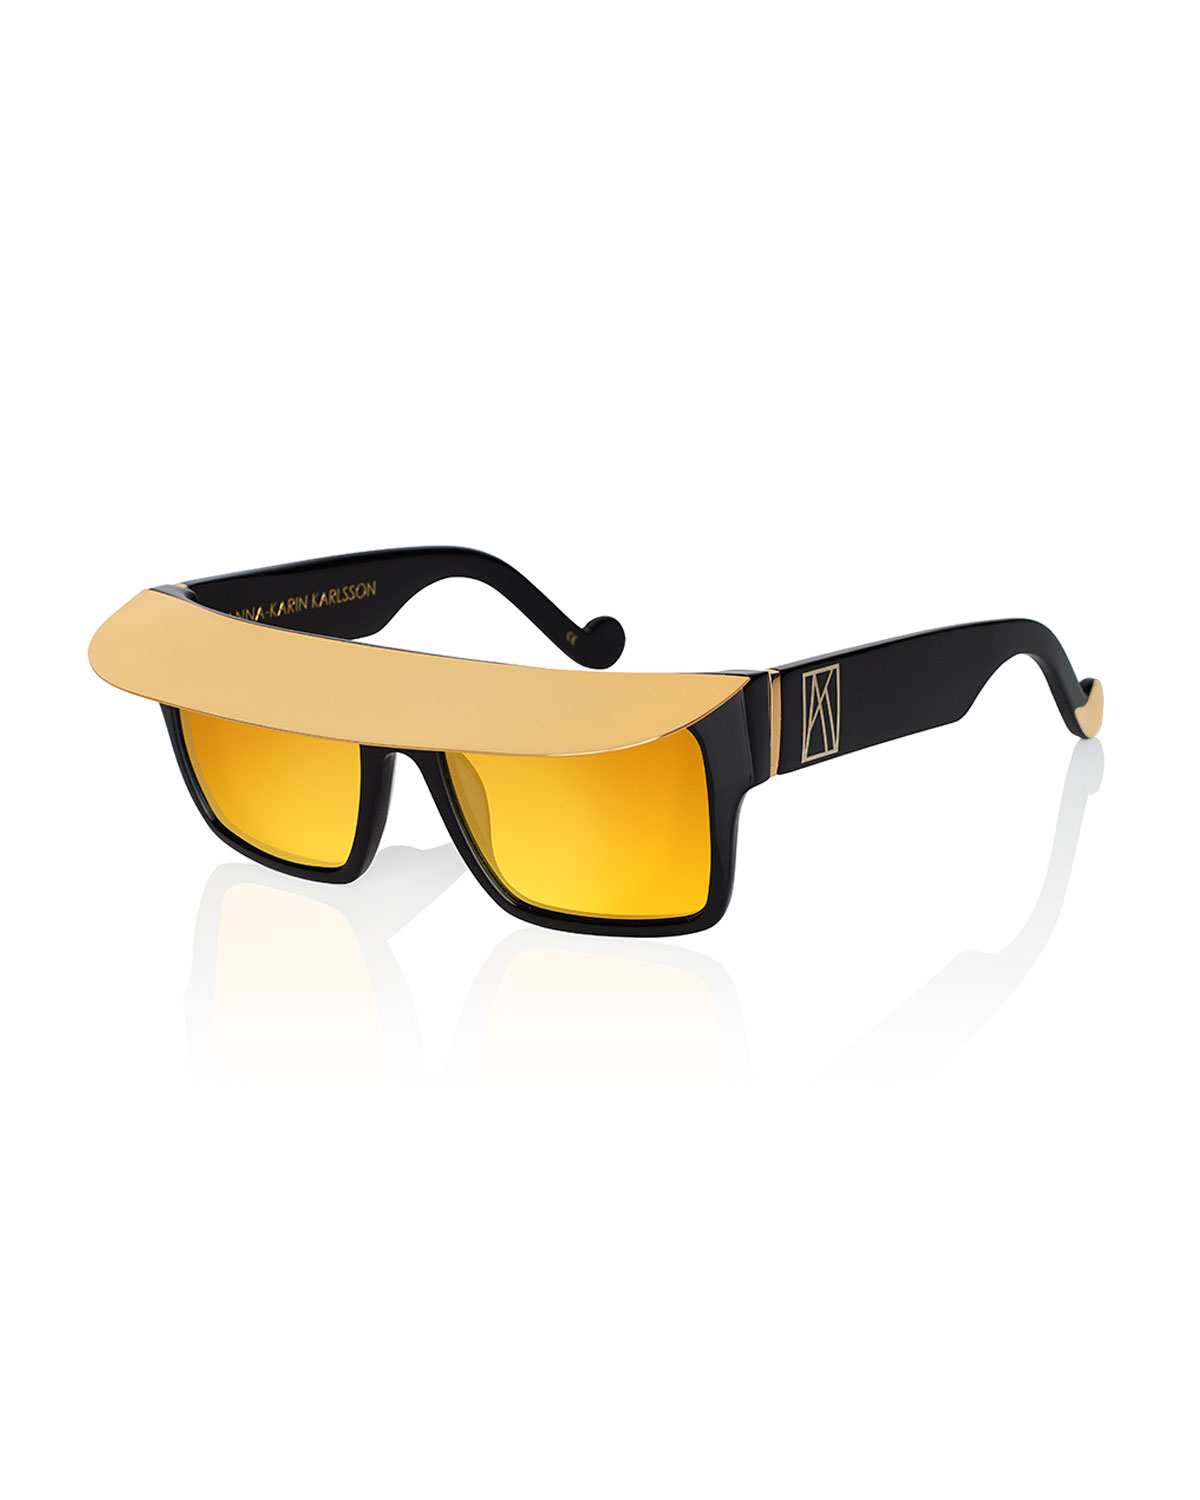 Buy Cheap Price Anna Karin Karlsson 'Shady' sunglasses Buy Cheap Collections Online Store Purchase 2uRi00zMG